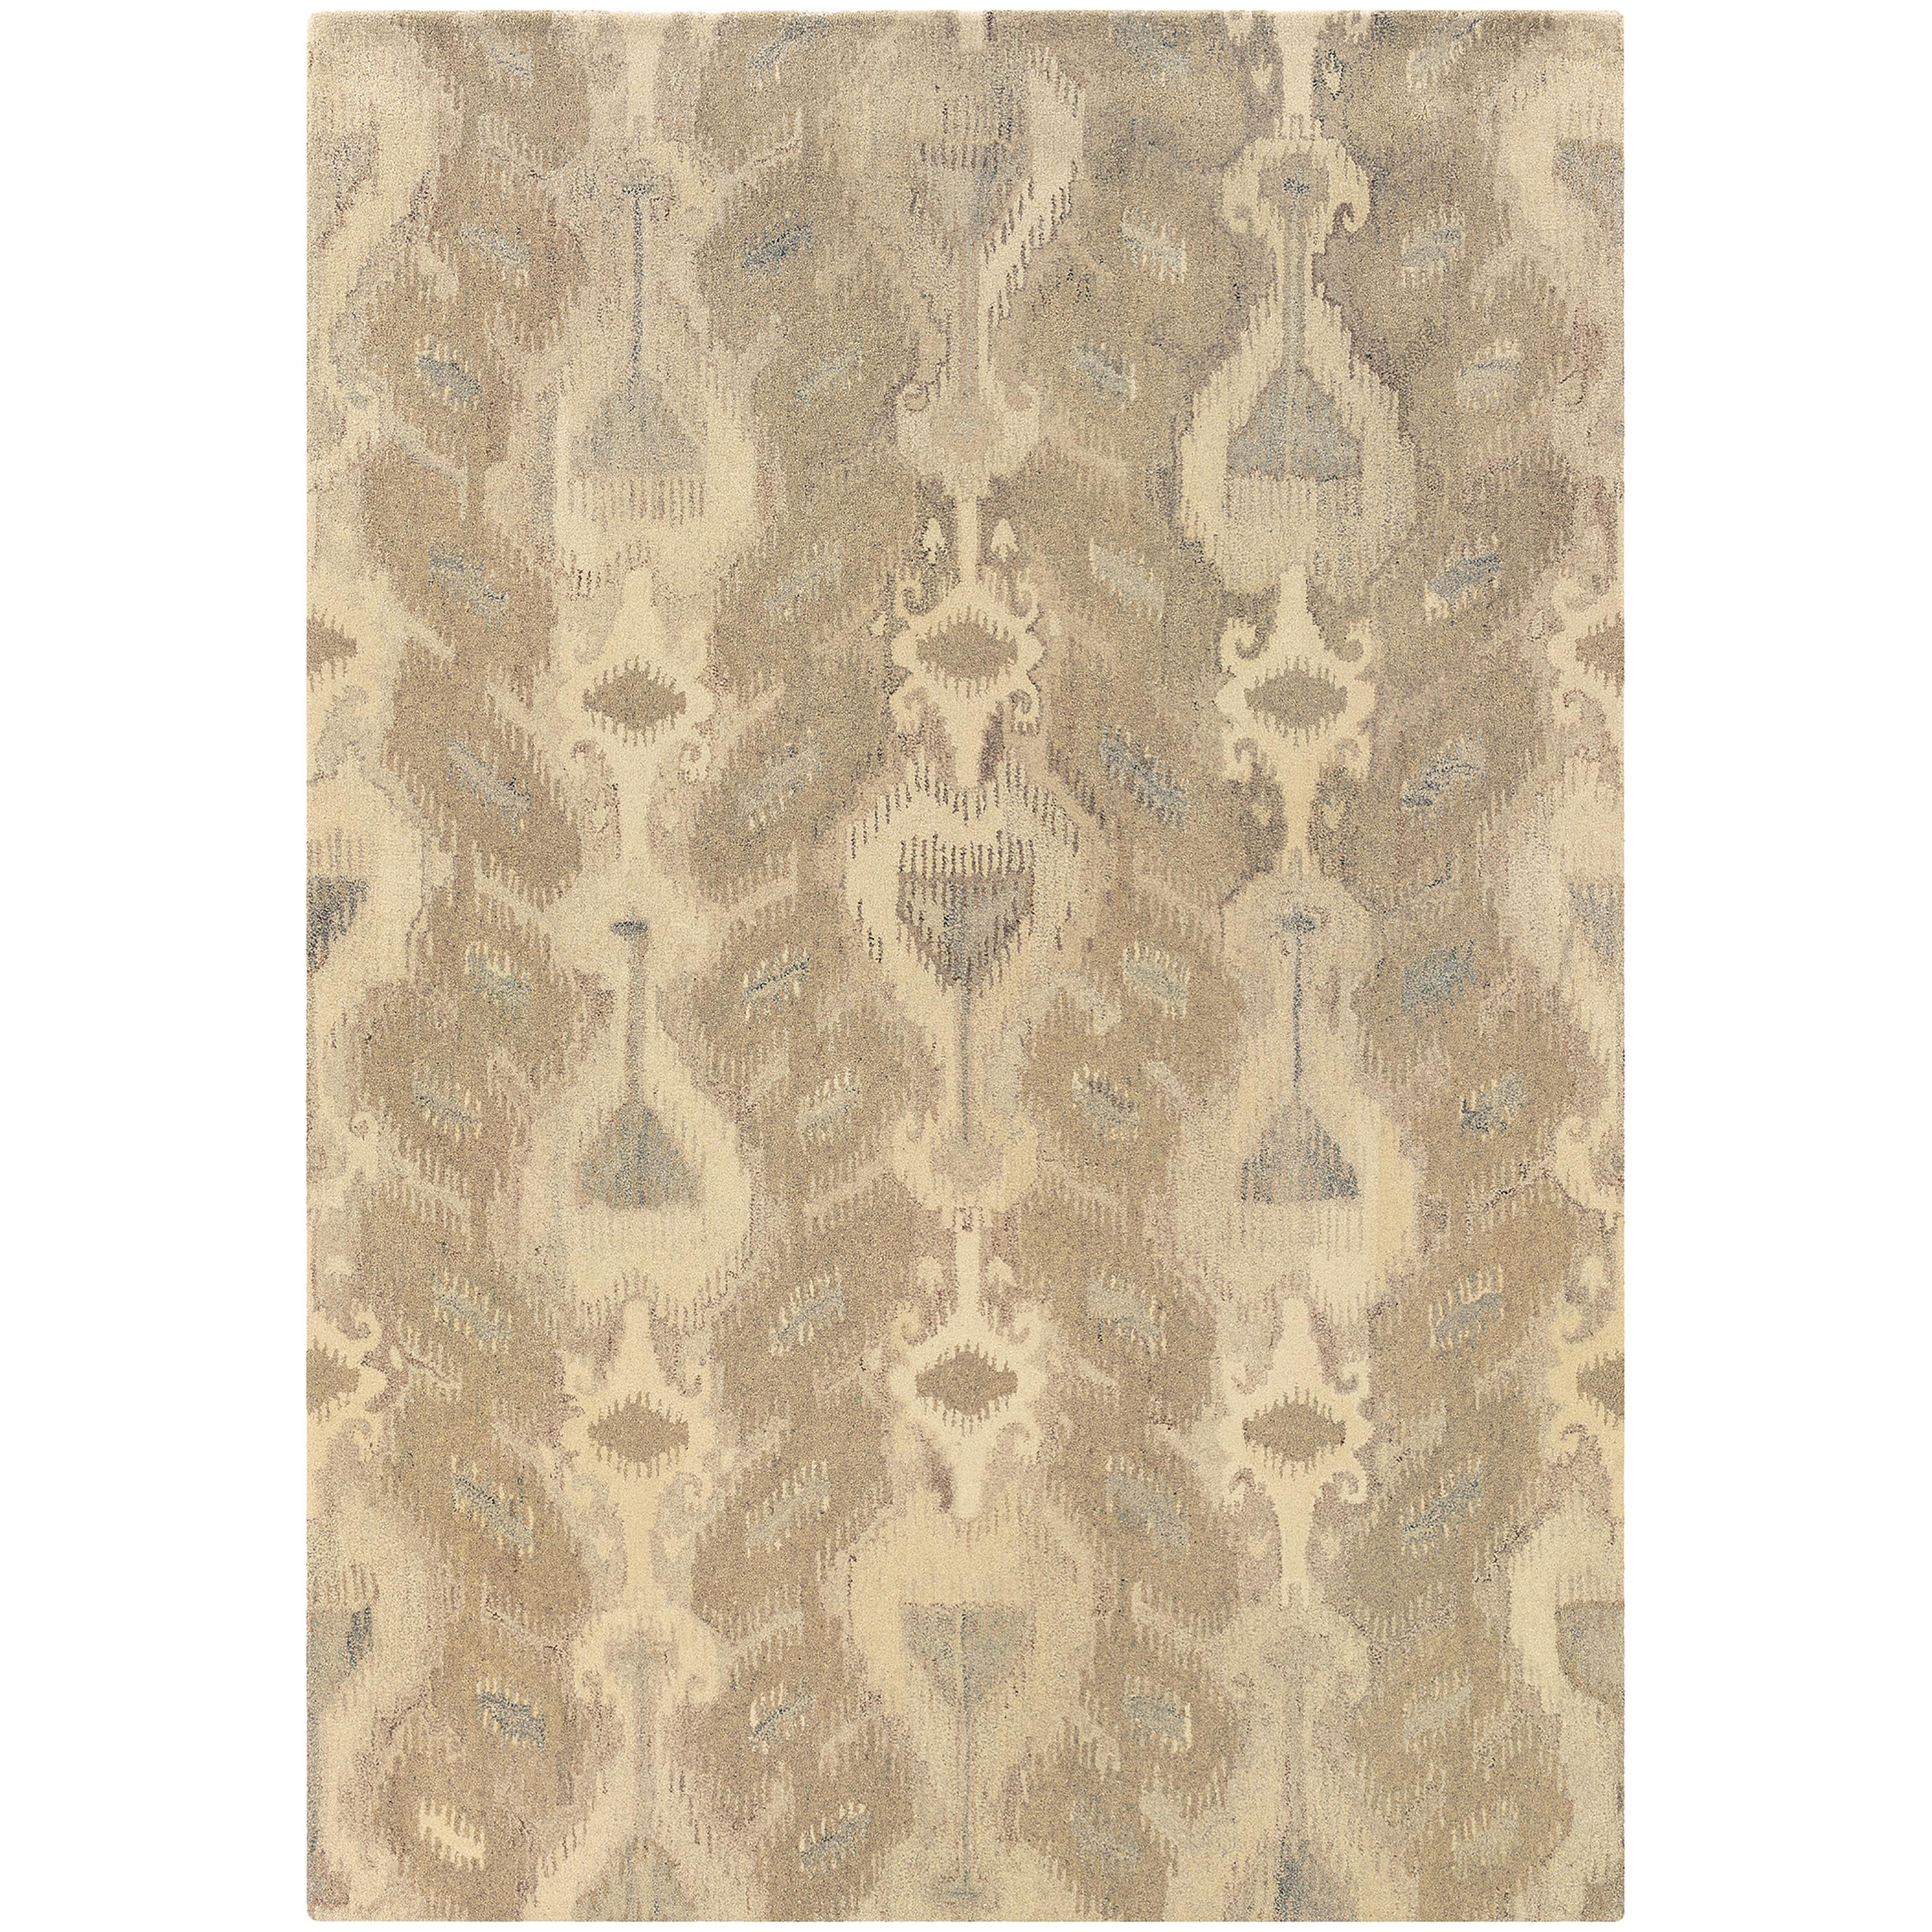 "Anastasia 10' 0"" X 13' 0"" Rug by Oriental Weavers at Dunk & Bright Furniture"